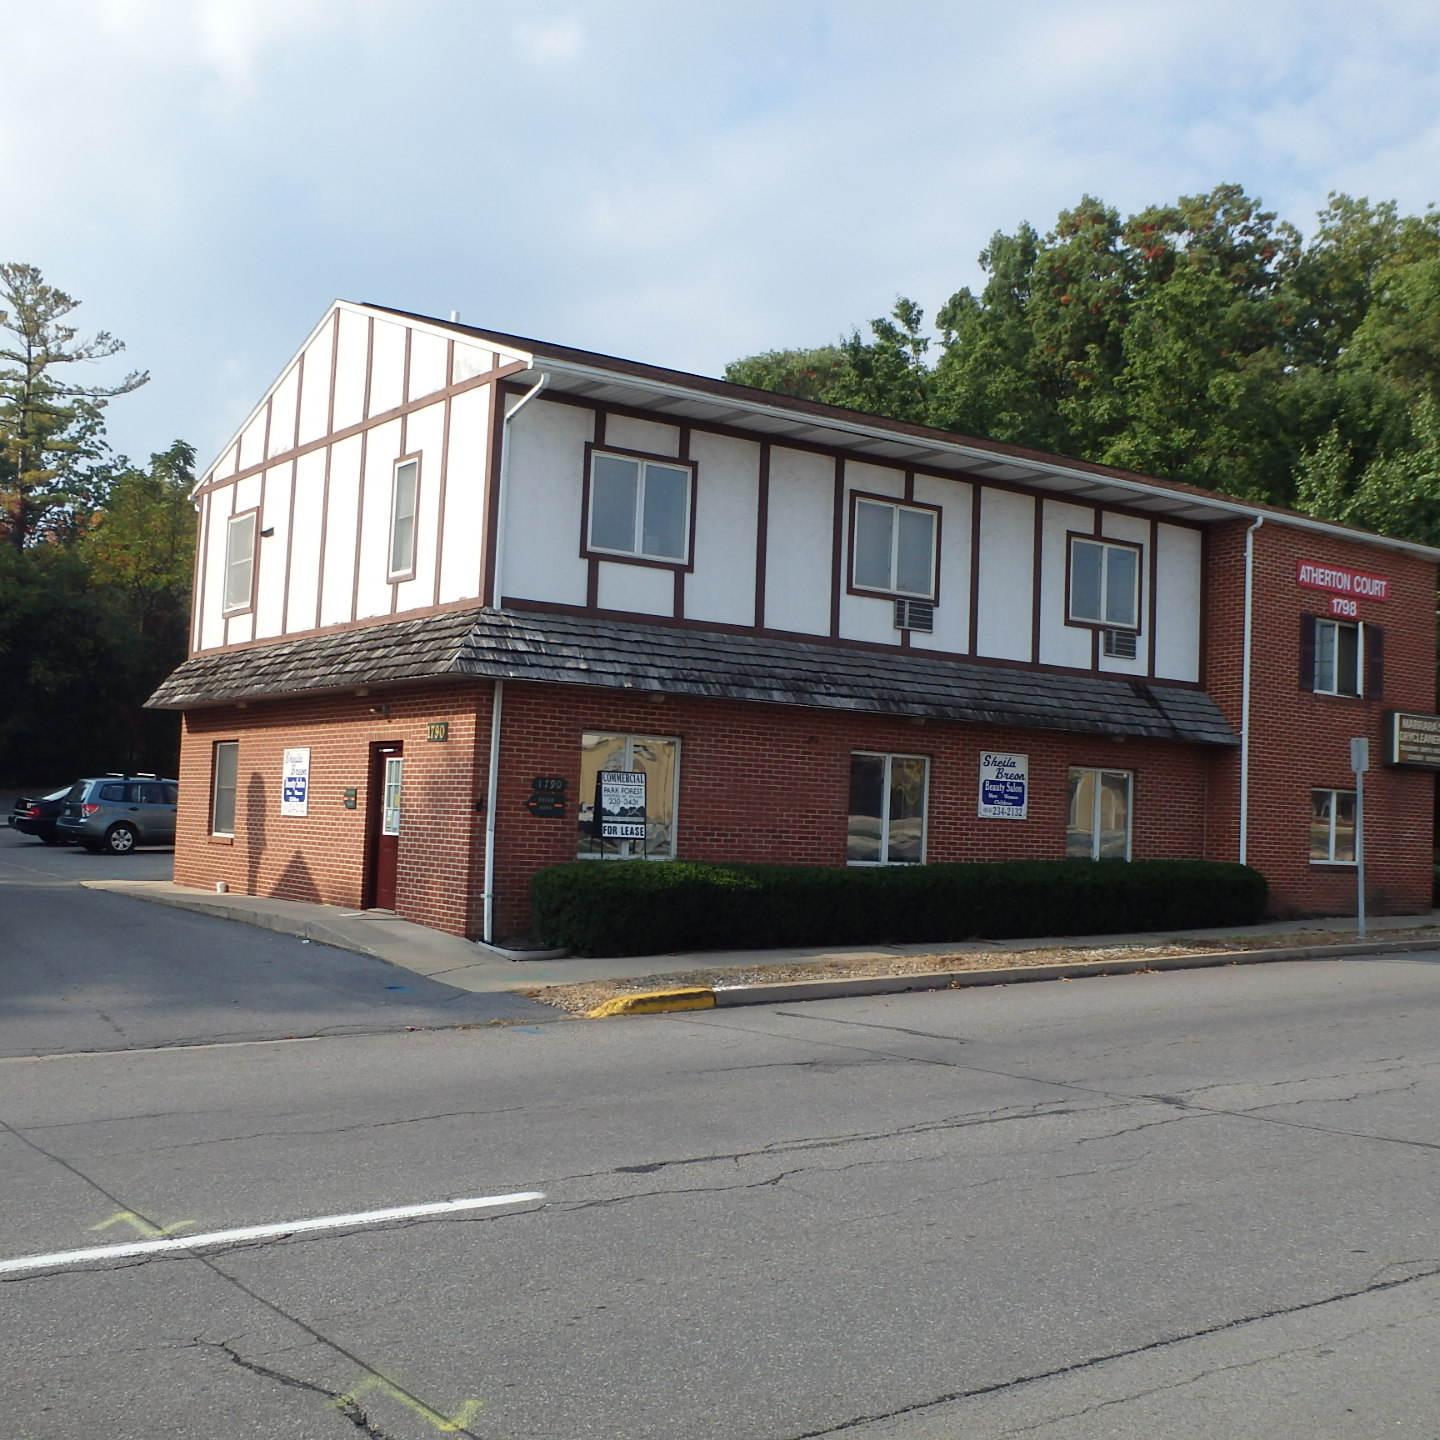 1790 N. Atherton Street Commercial Space for Rent in State College PA 16803